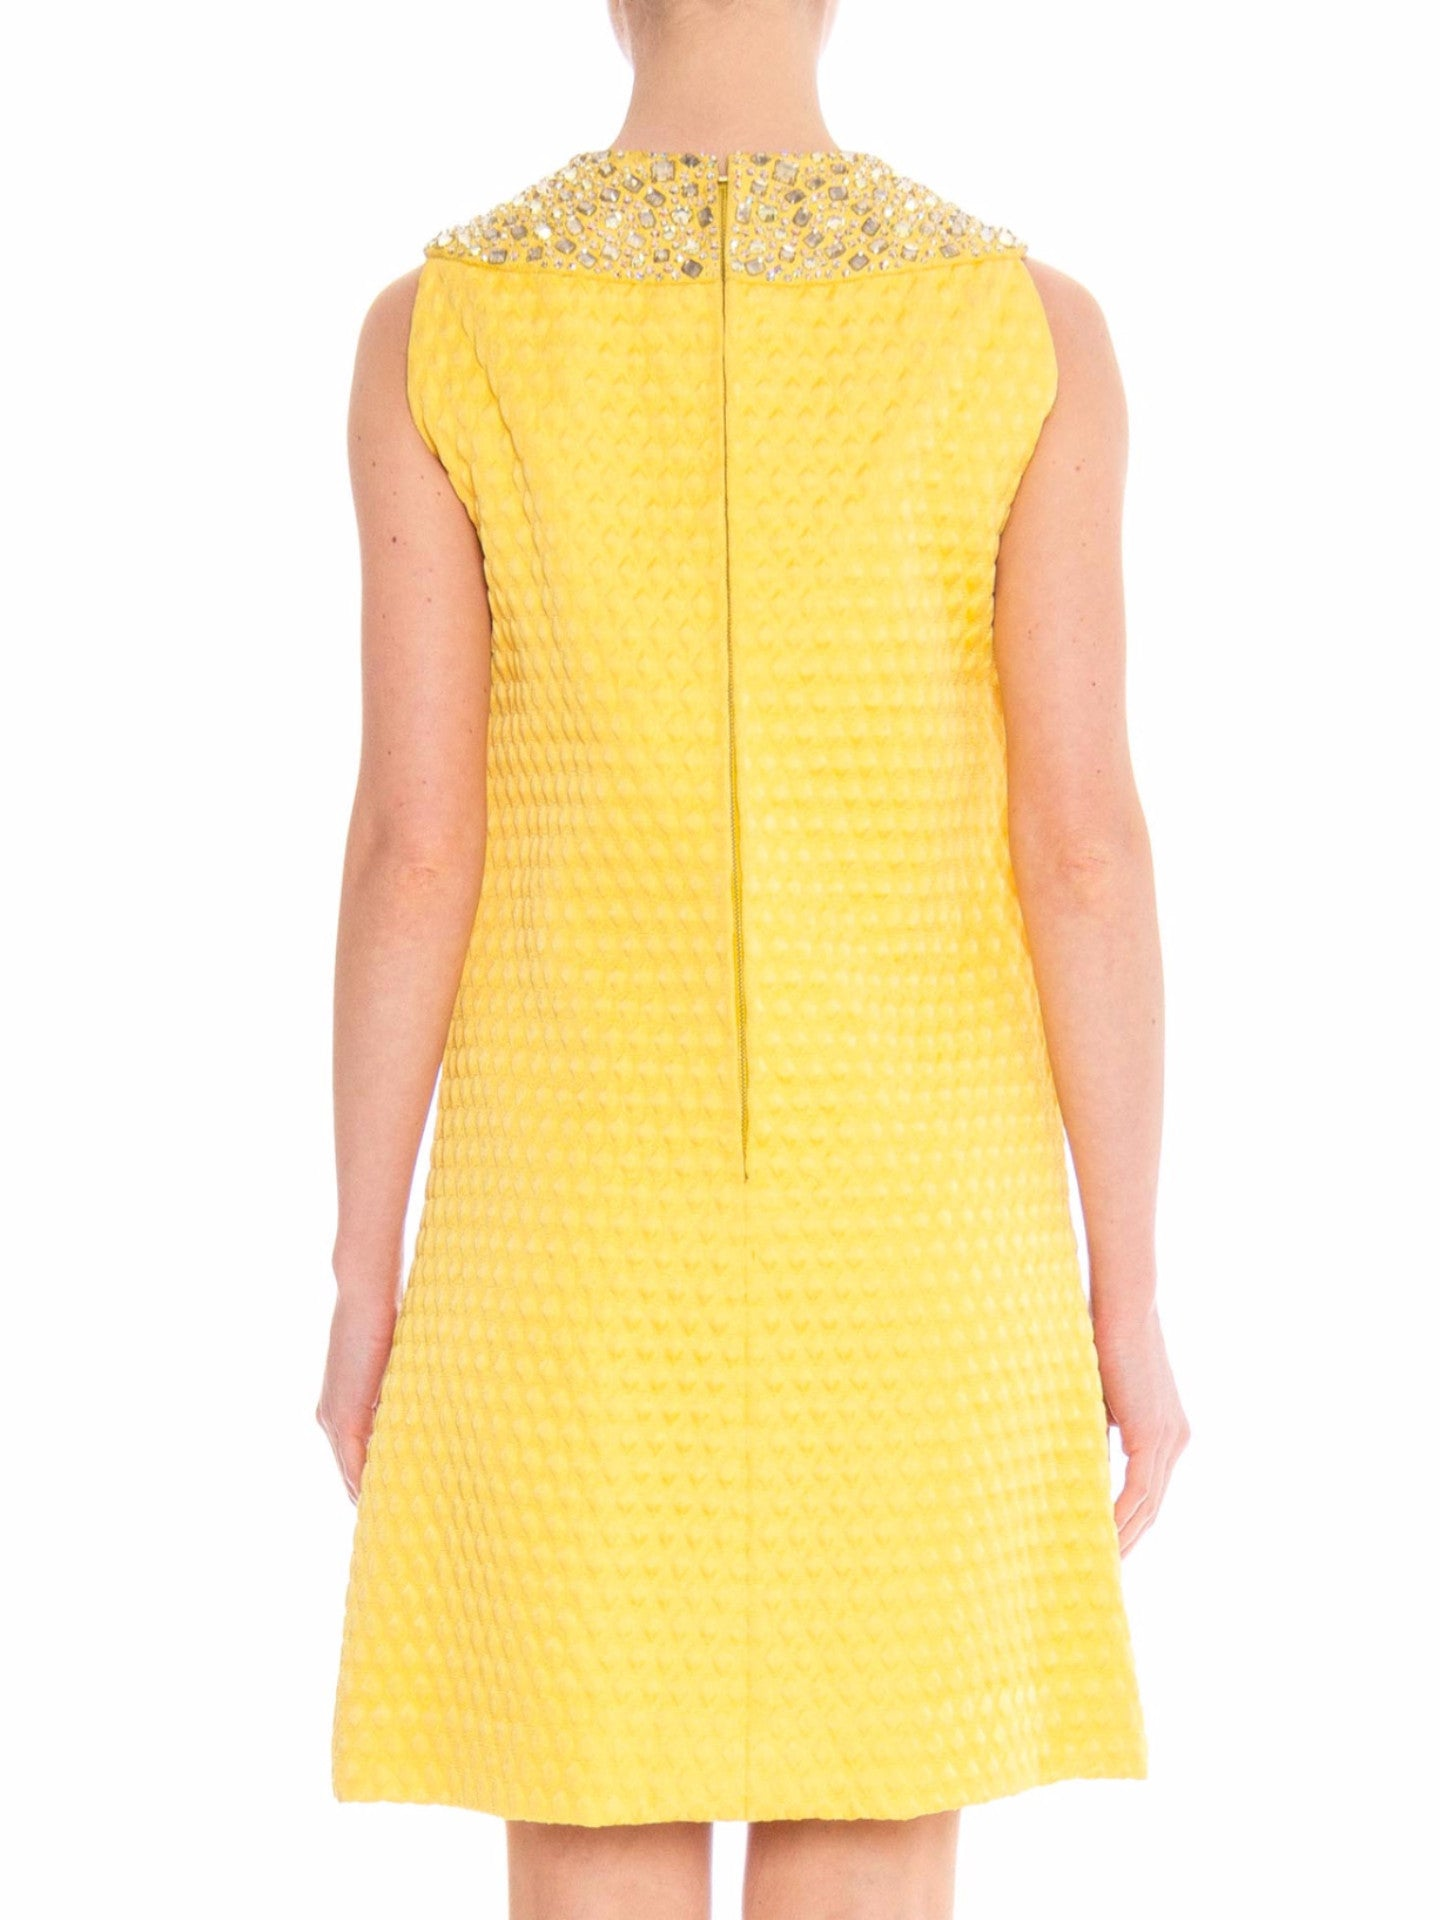 1960 OSCAR DE LA RENTA Yellow Geometric Rayon Blend Matelassé Cocktail Dress With Giant Crystal Collar